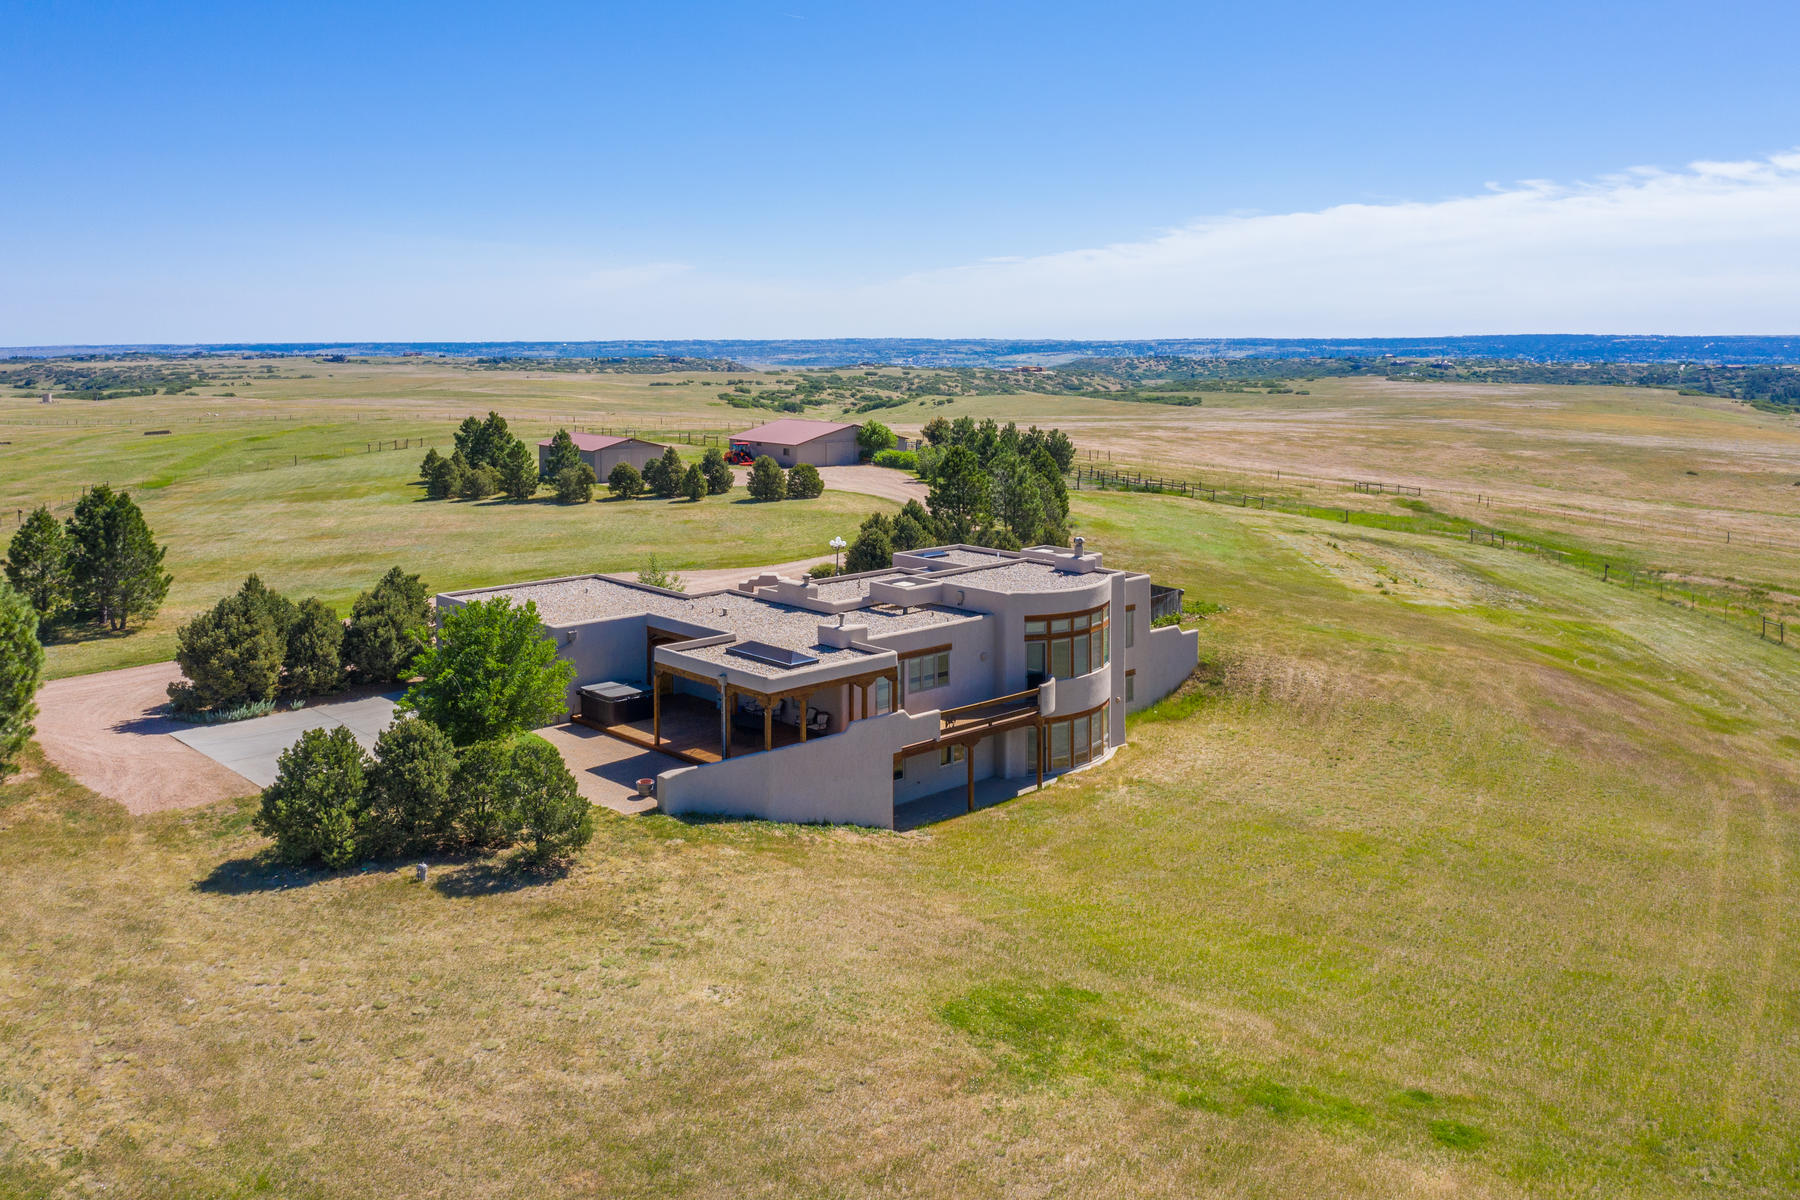 Single Family Homes for Active at 35 Acres of Equestrian Tranquility 1764 Mesa Ridge Lane Castle Rock, Colorado 80108 United States